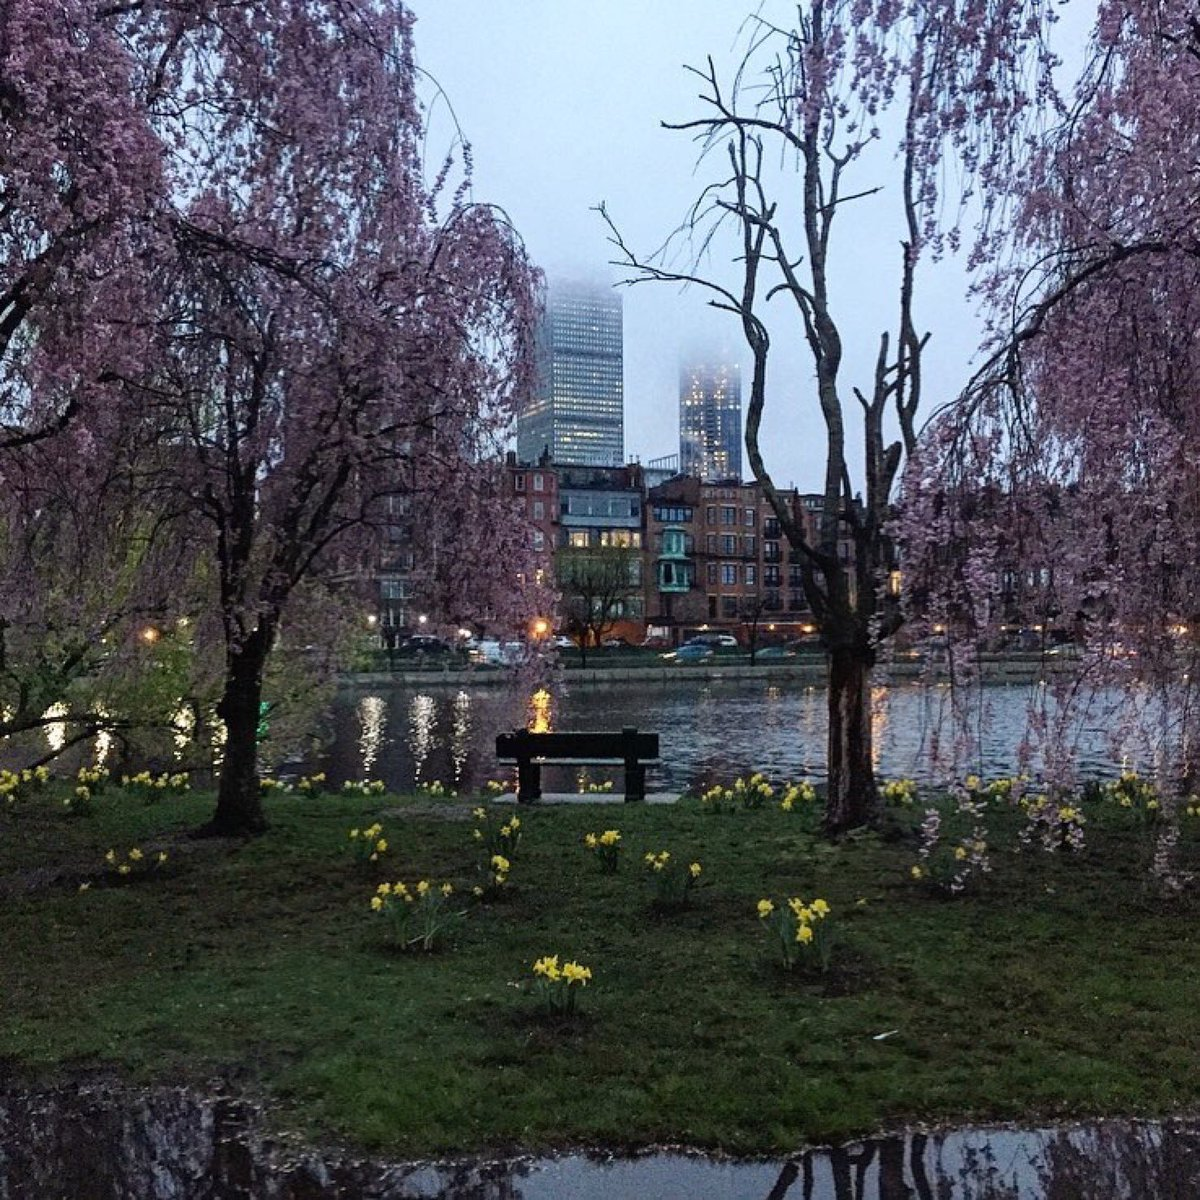 Have you been enjoying the bright daffodils on all these rainy days? Many of the ones you see in the park are the #boston2019 daffodils from Comm Ave, replanted in the park. A huge thank you to our friends at the @GardenClubBBay for making this possible!   : @run_bos_71<br>http://pic.twitter.com/FdhvRi28Wm